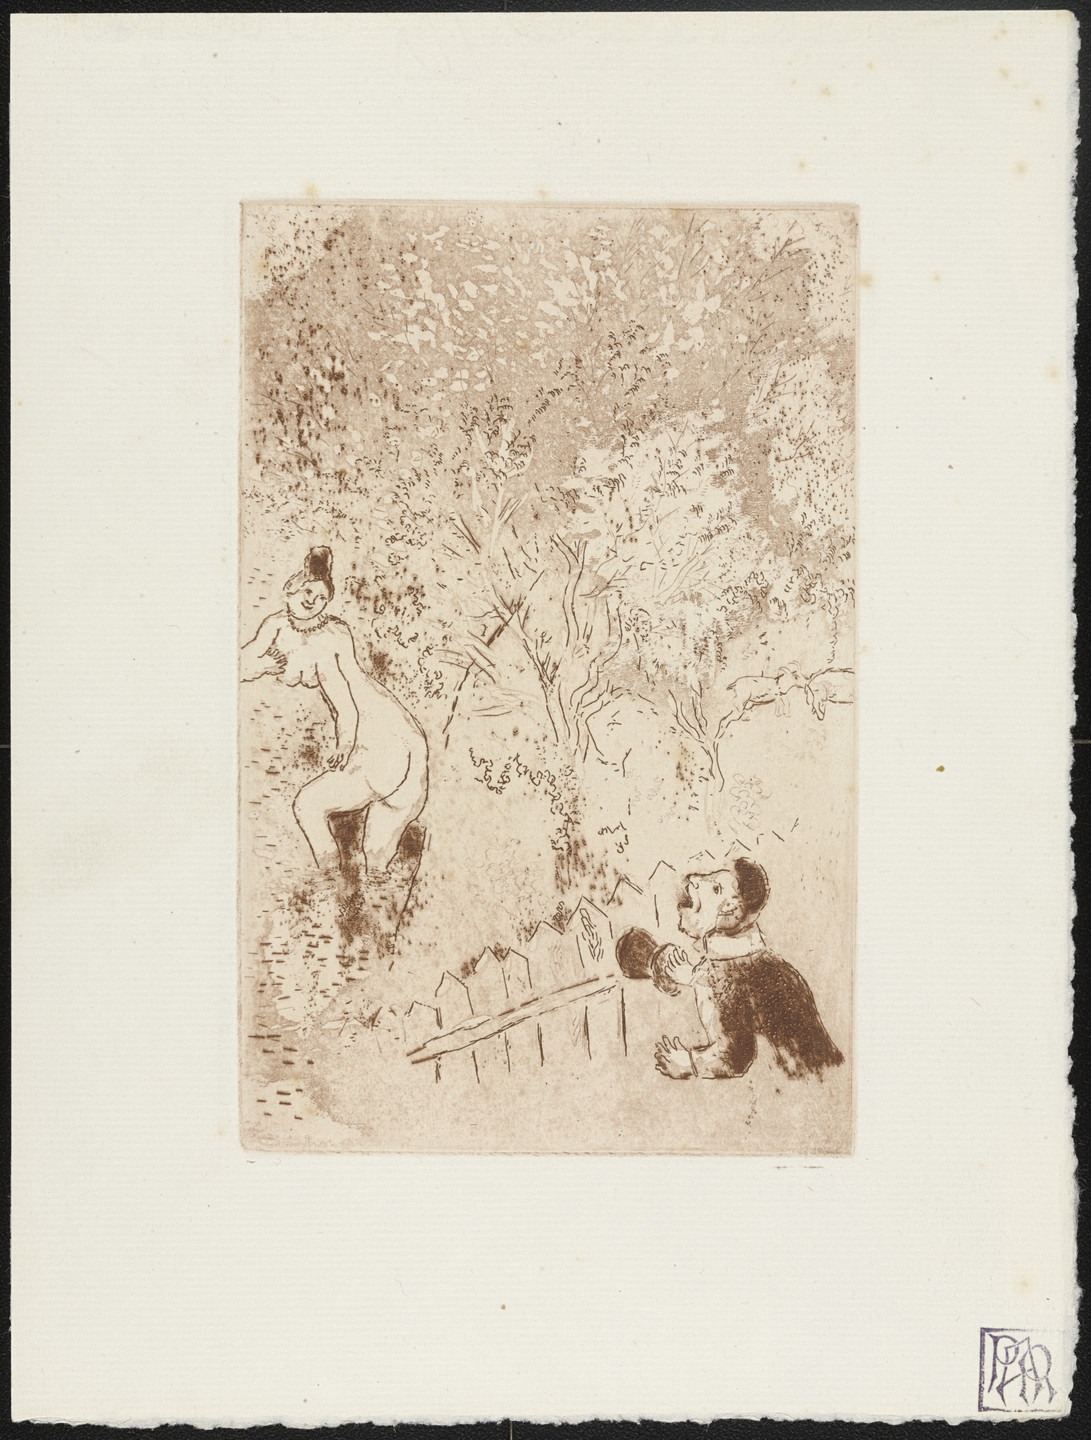 Marc Chagall. Envy II (L'Envie II) from The Seven Deadly Sins (Les Sept péchés capitaux). 1925, published 1926